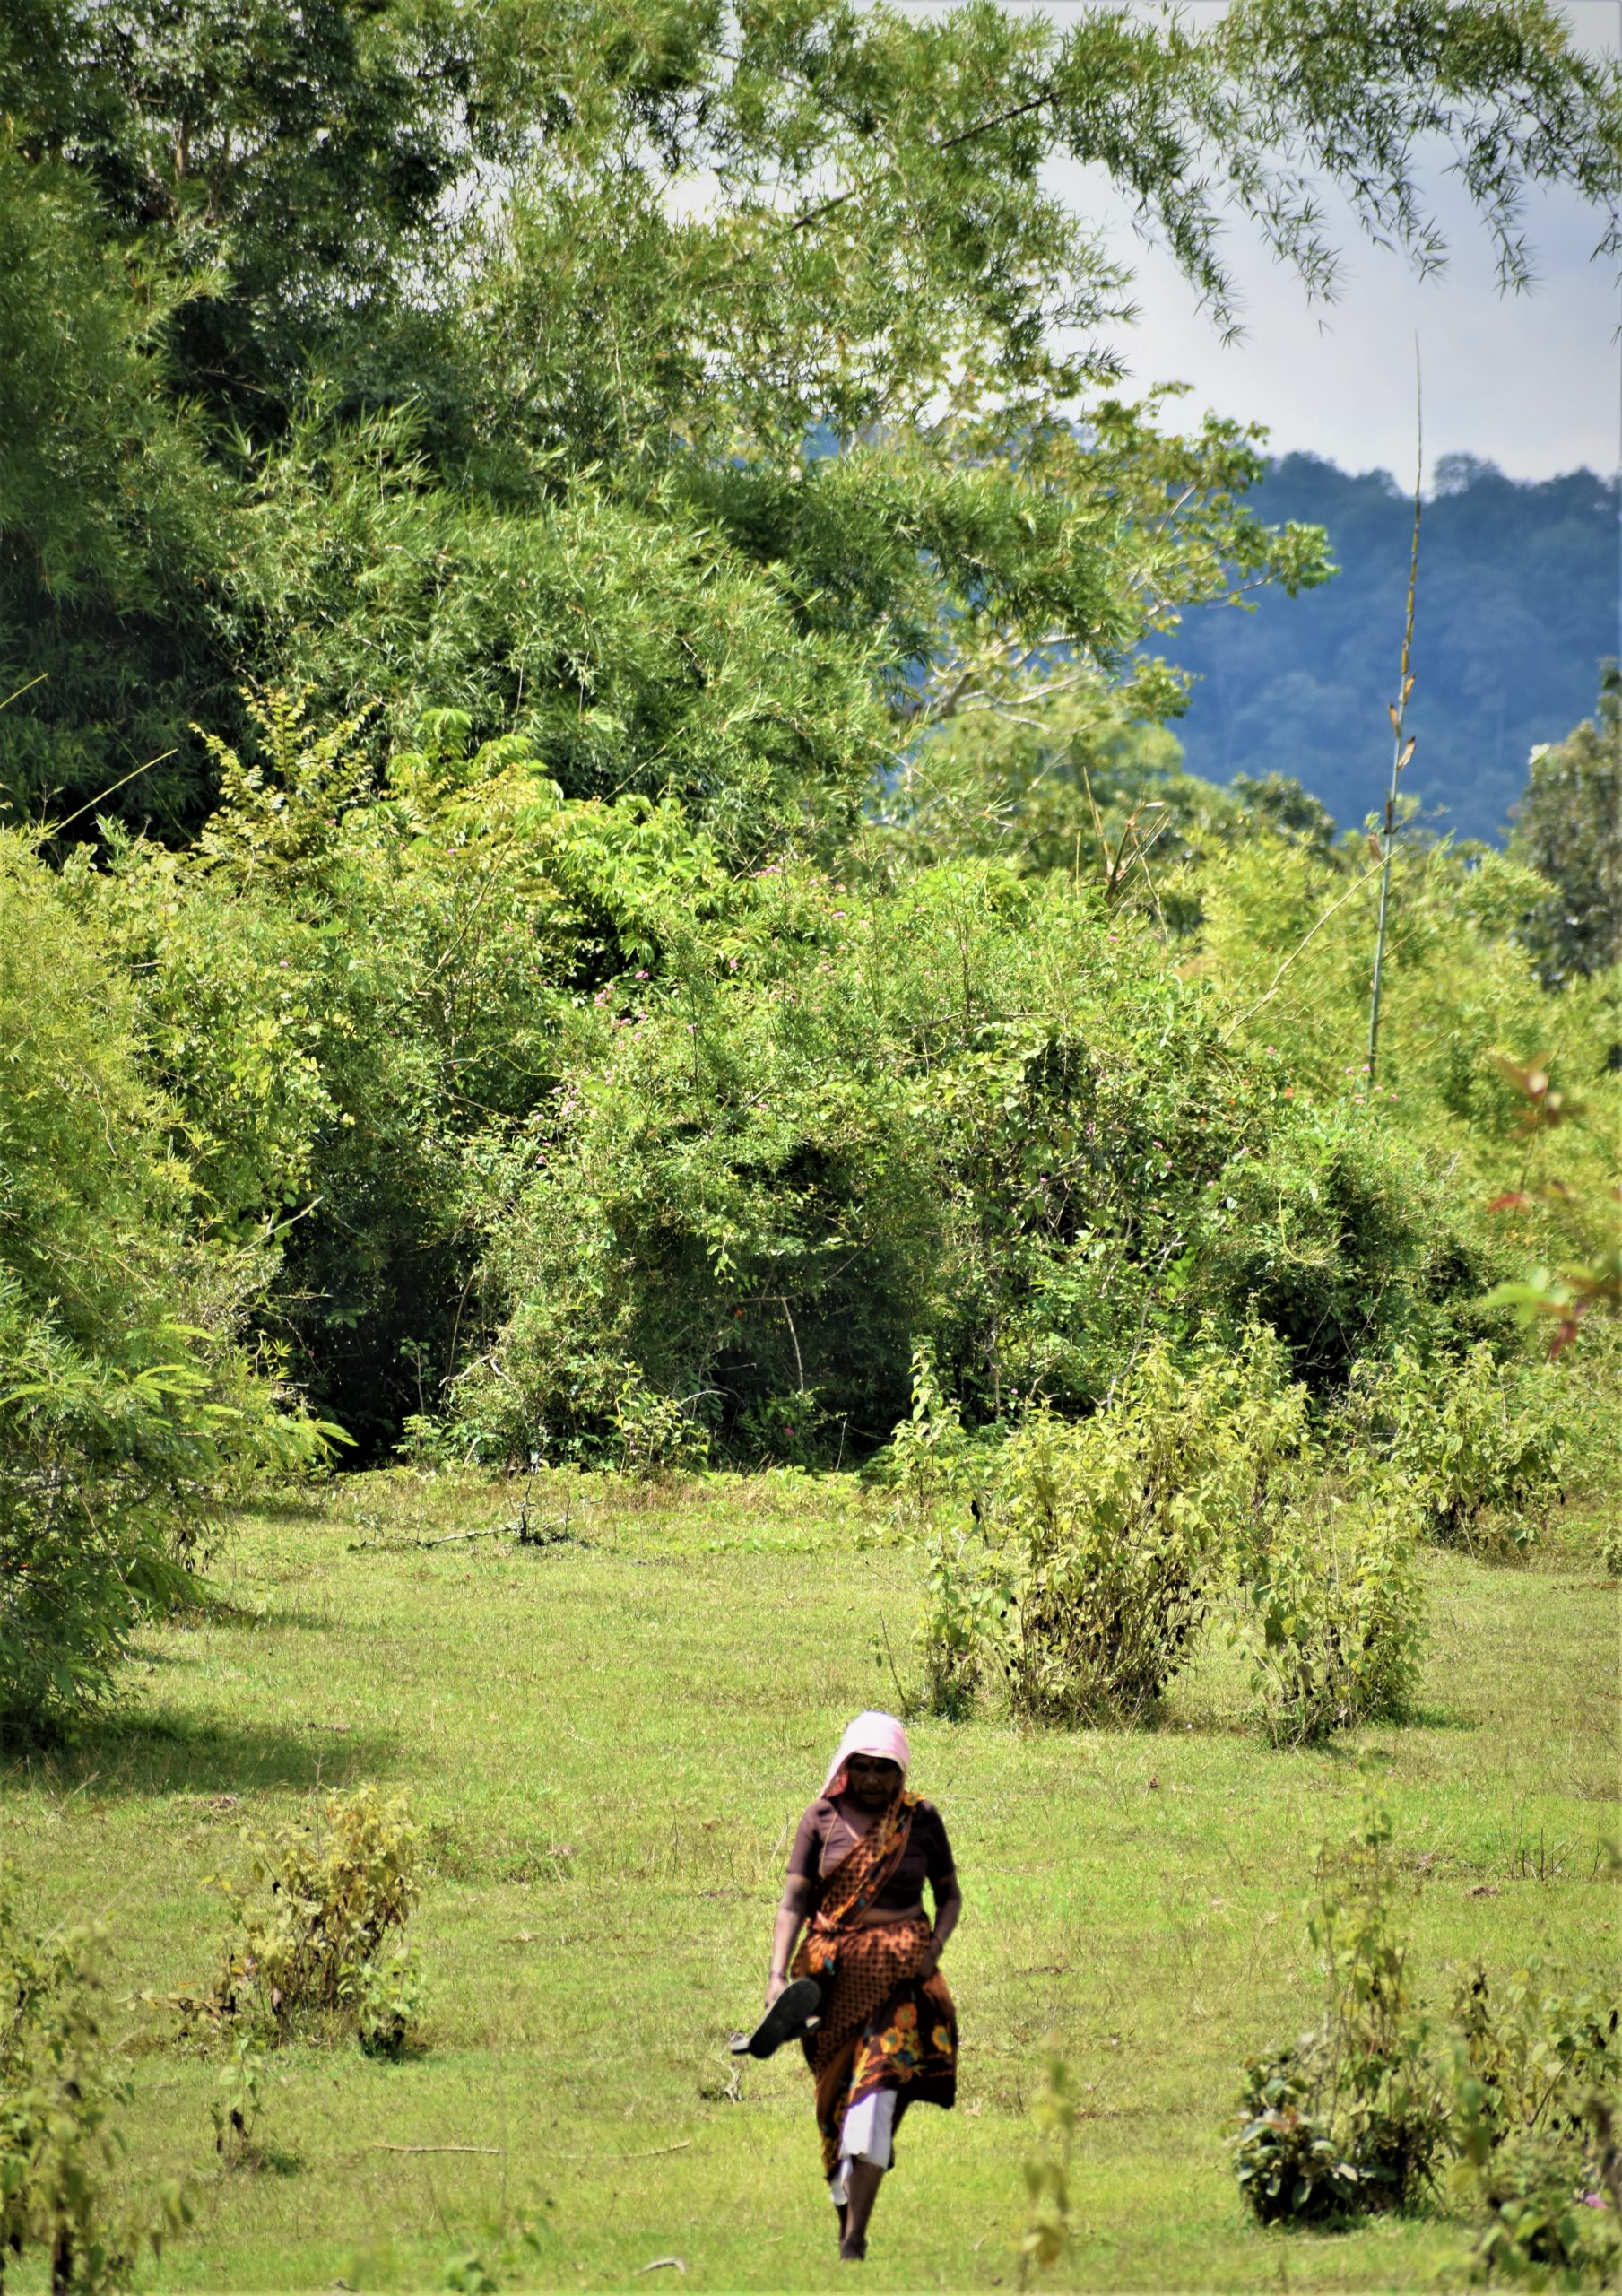 A woman walking through jungle